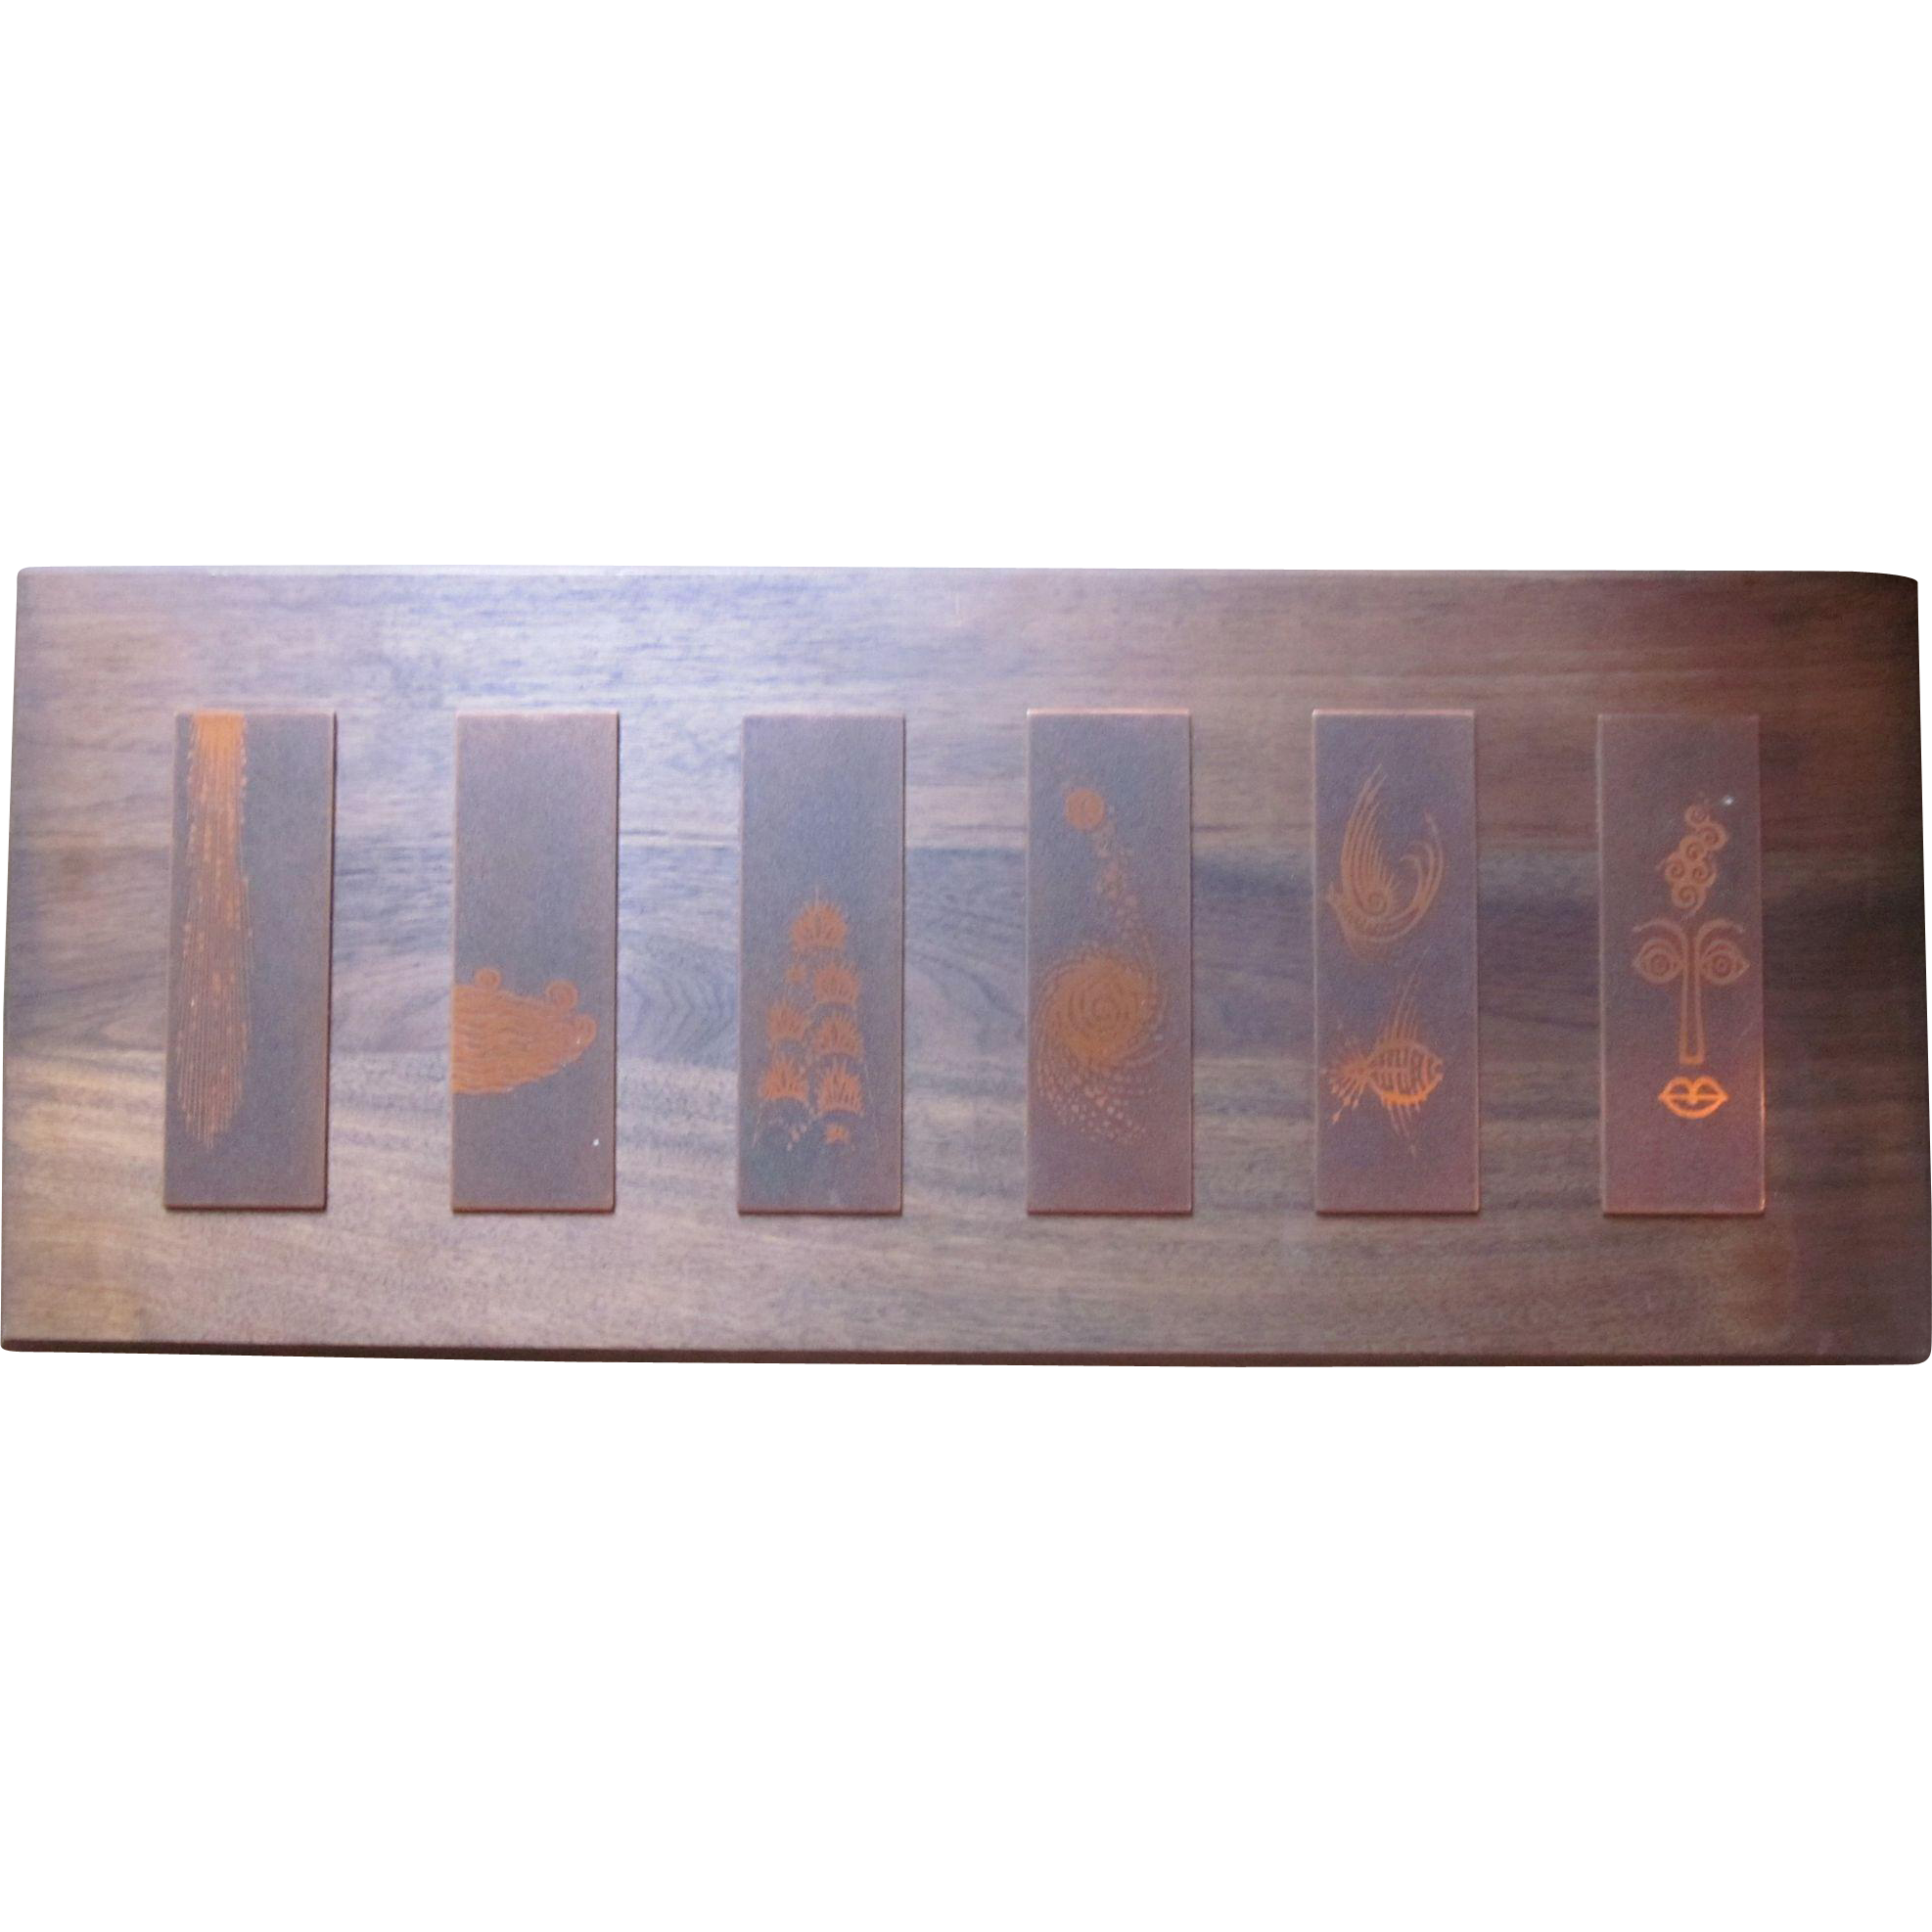 MCM Engraved Copper plaques mounted on Wood - Art